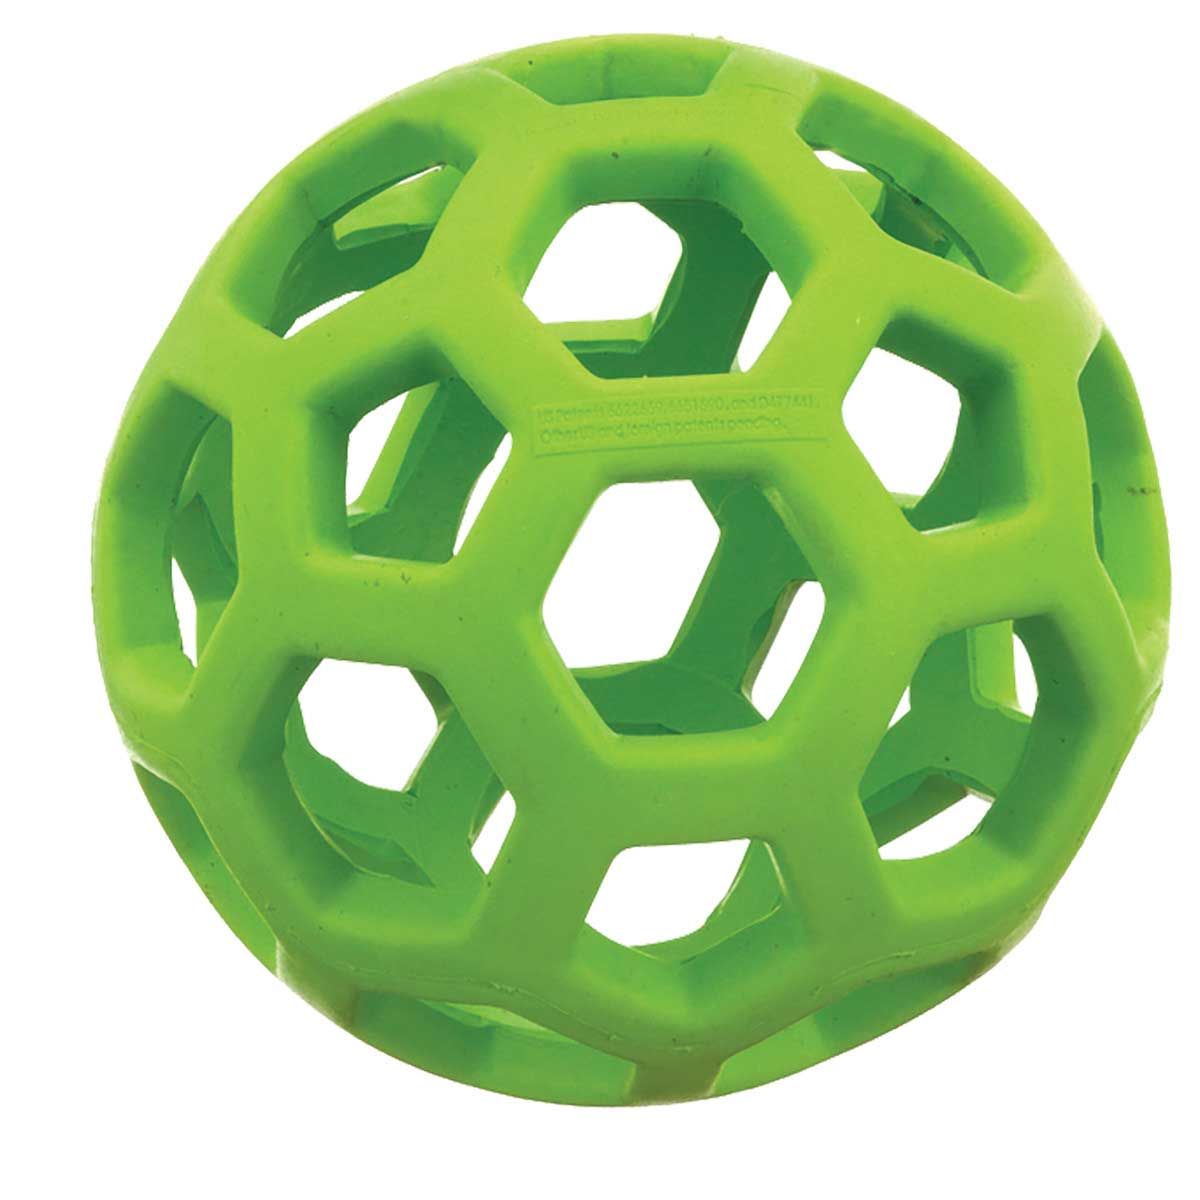 Assorted Colors JW Hol-ee Roller 5 inch Interactive Puzzle Treat Dispensing Toy for Dogs